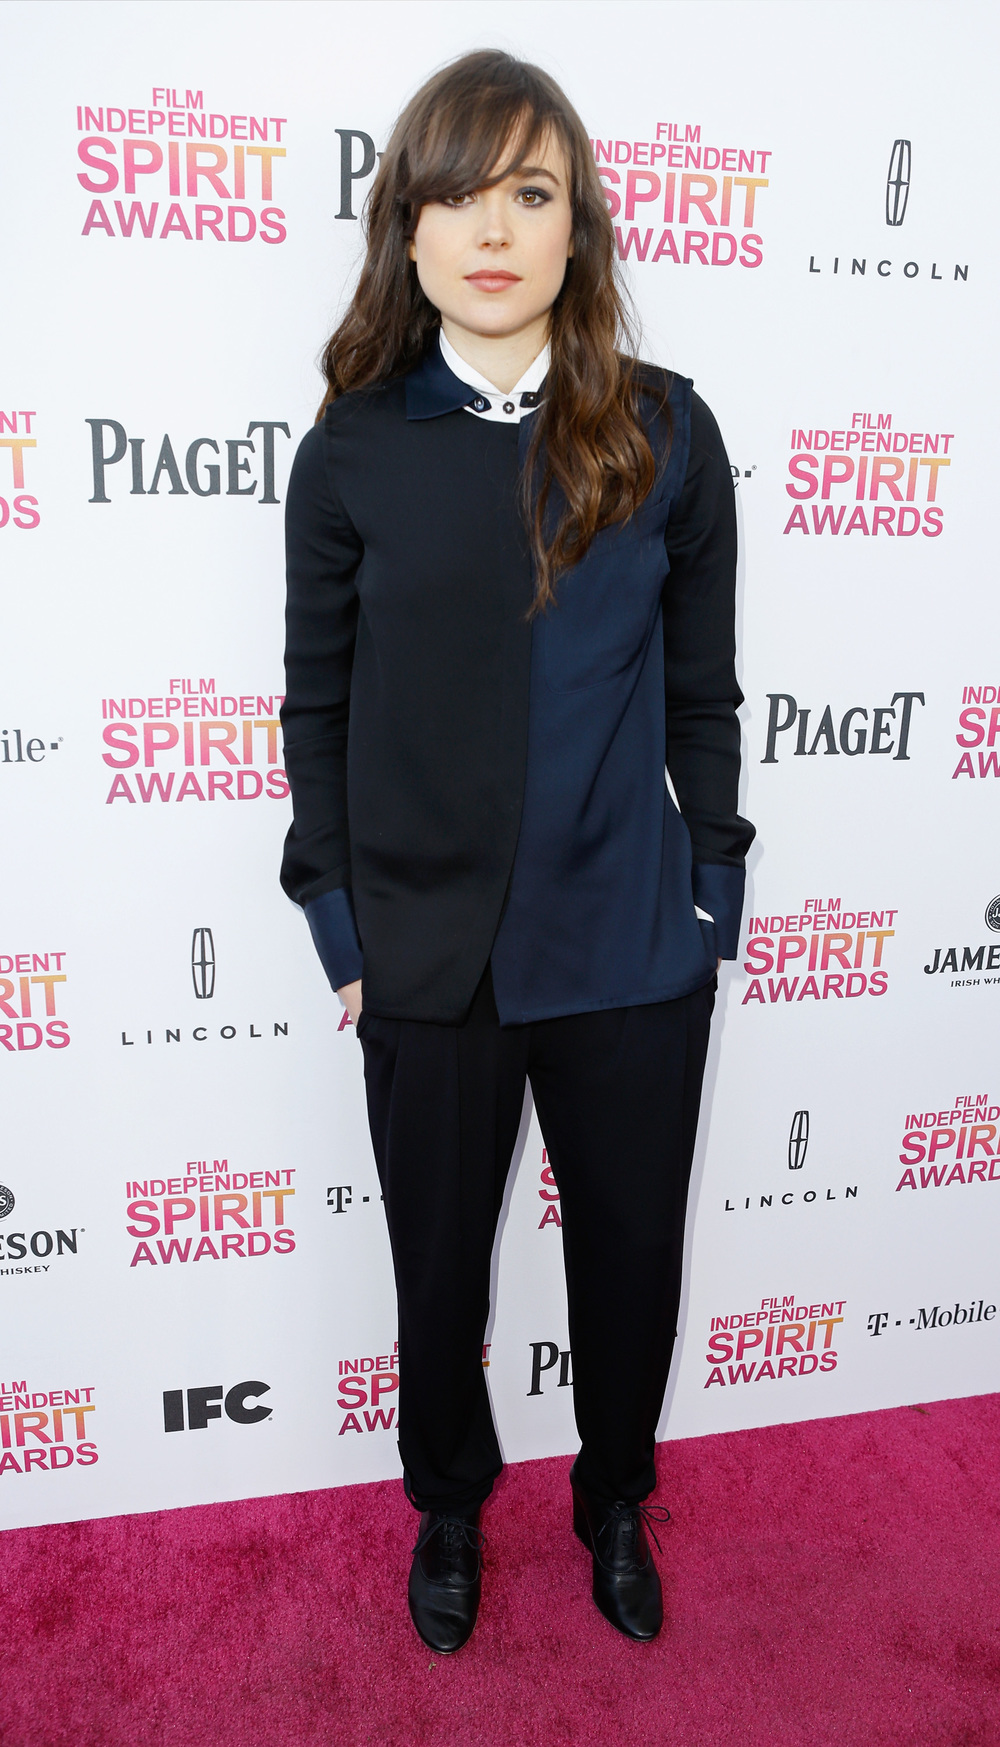 February 23, 2013 Film Independent Spirit Awards